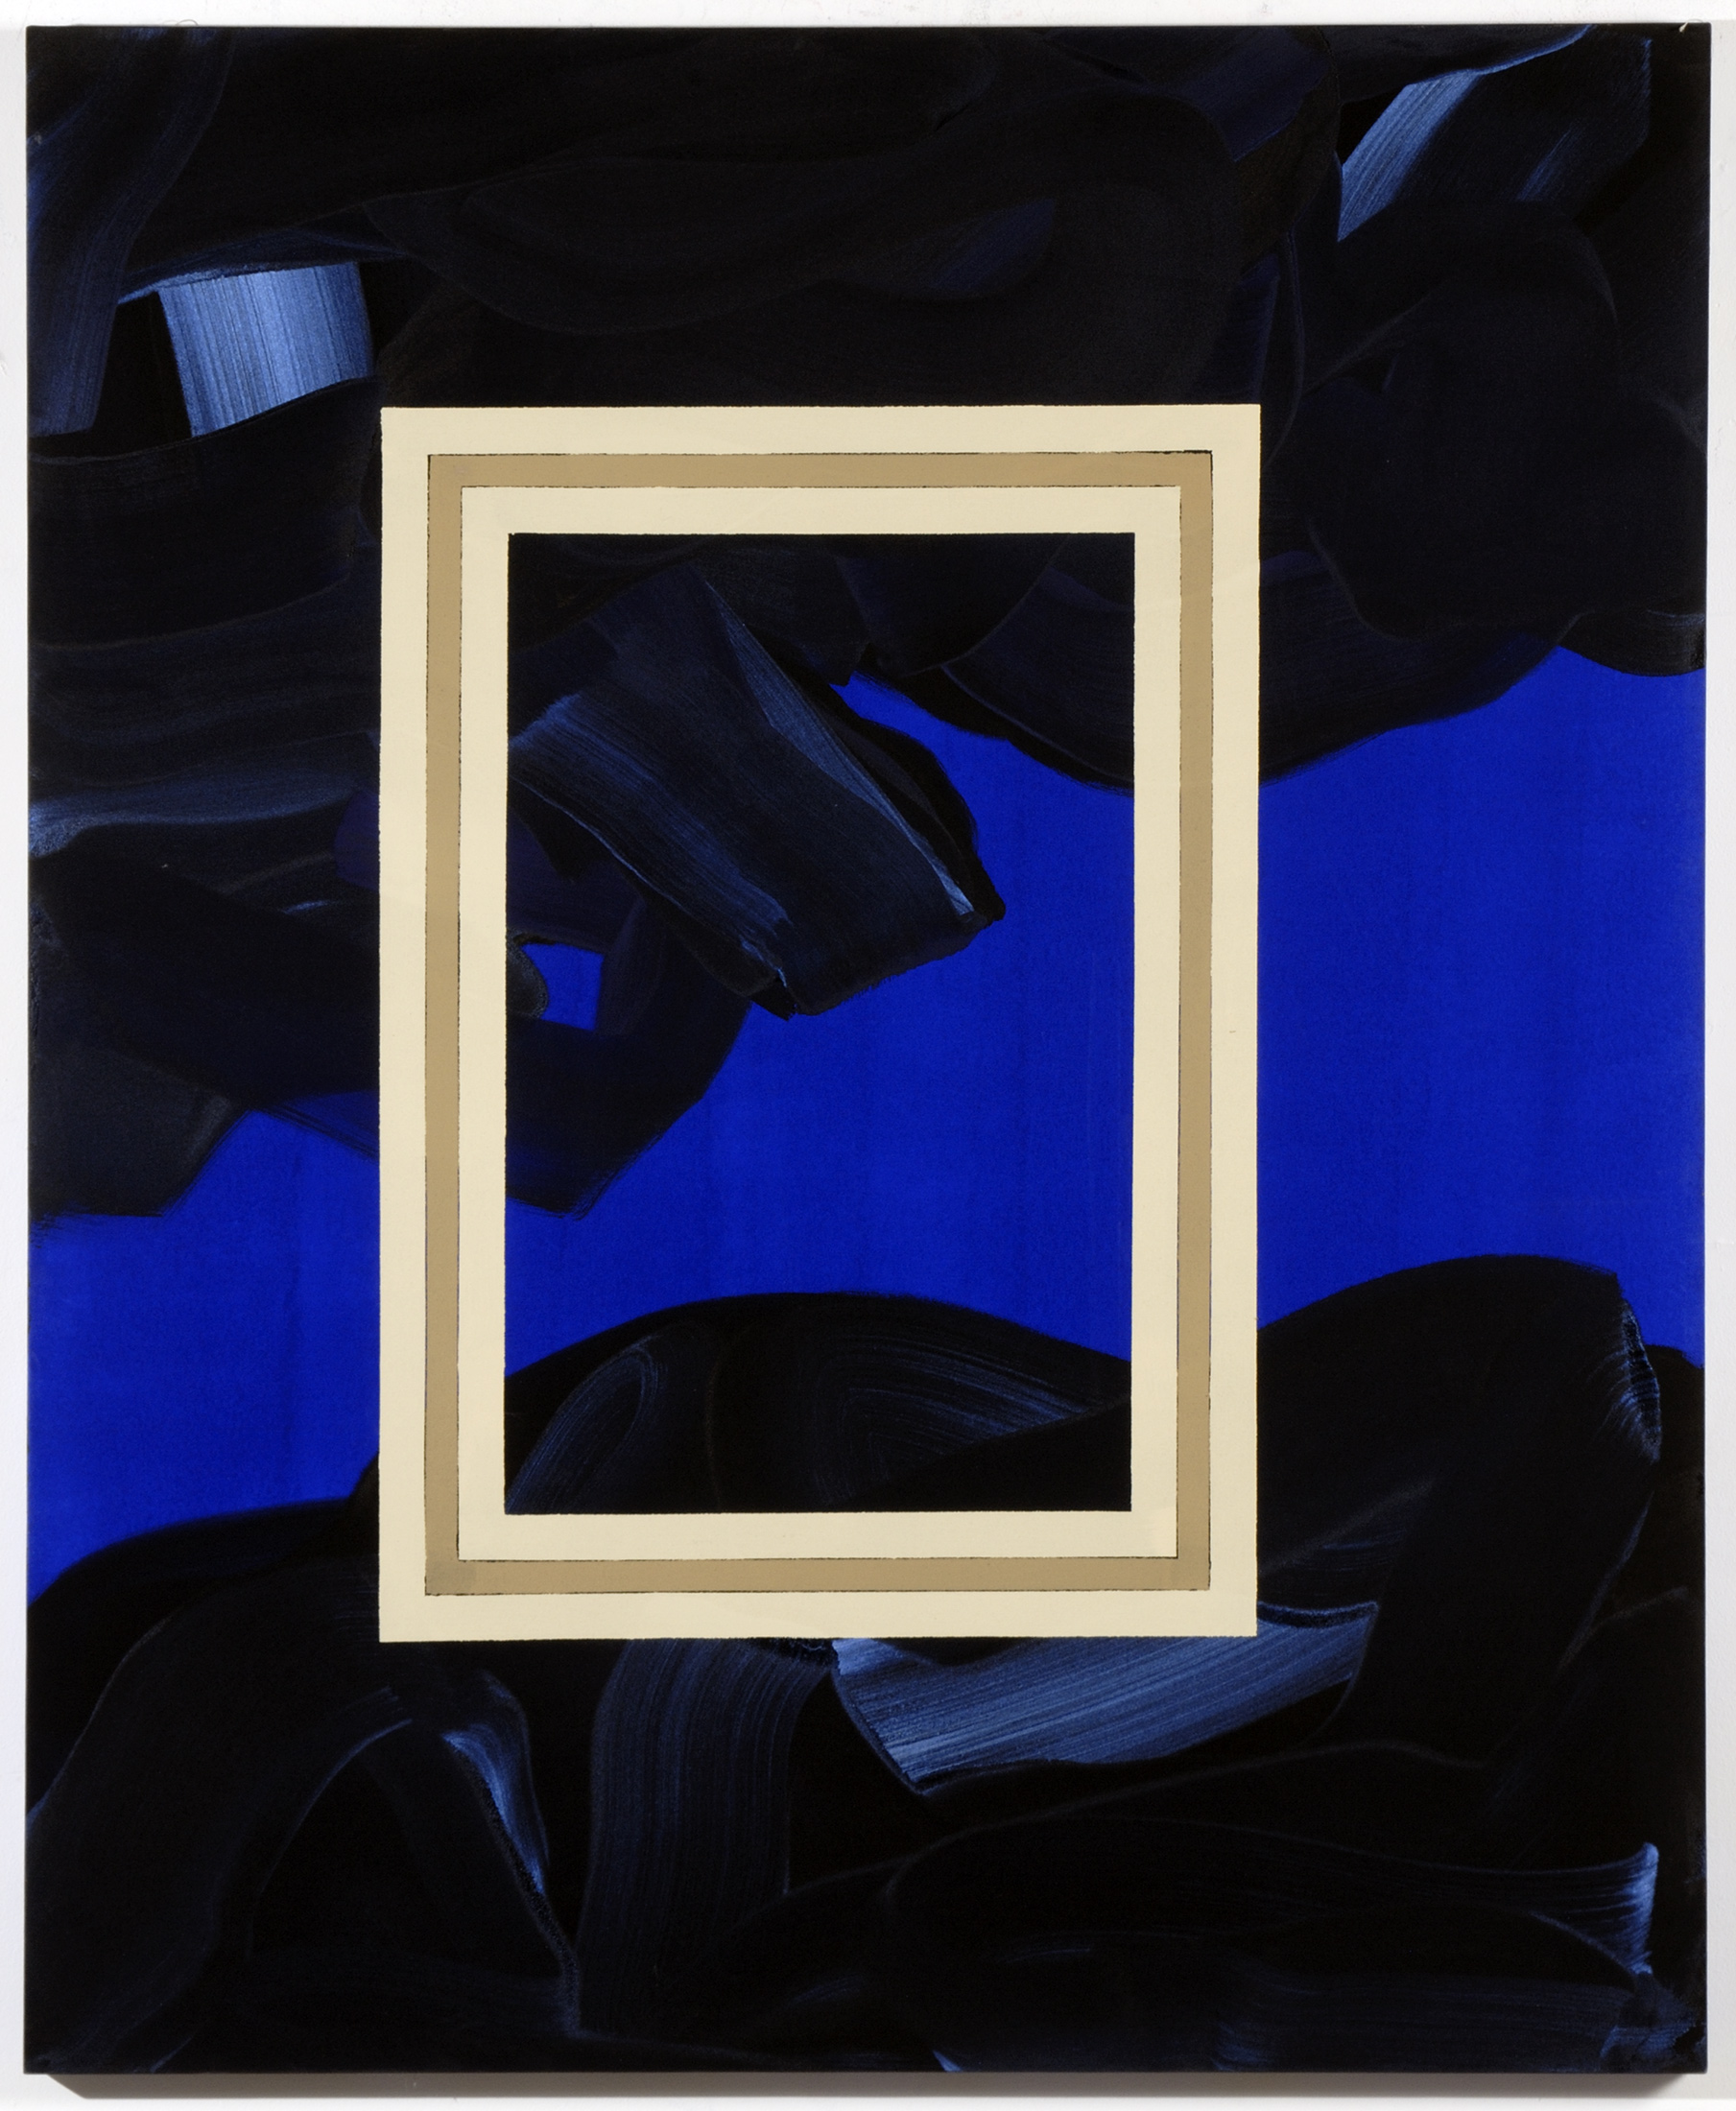 """Ed Moses's """"Budulox""""(2006) will be on view in """"Painting After Postmodernism.""""(Photo: Courtesy Robert Polo Gallery)"""